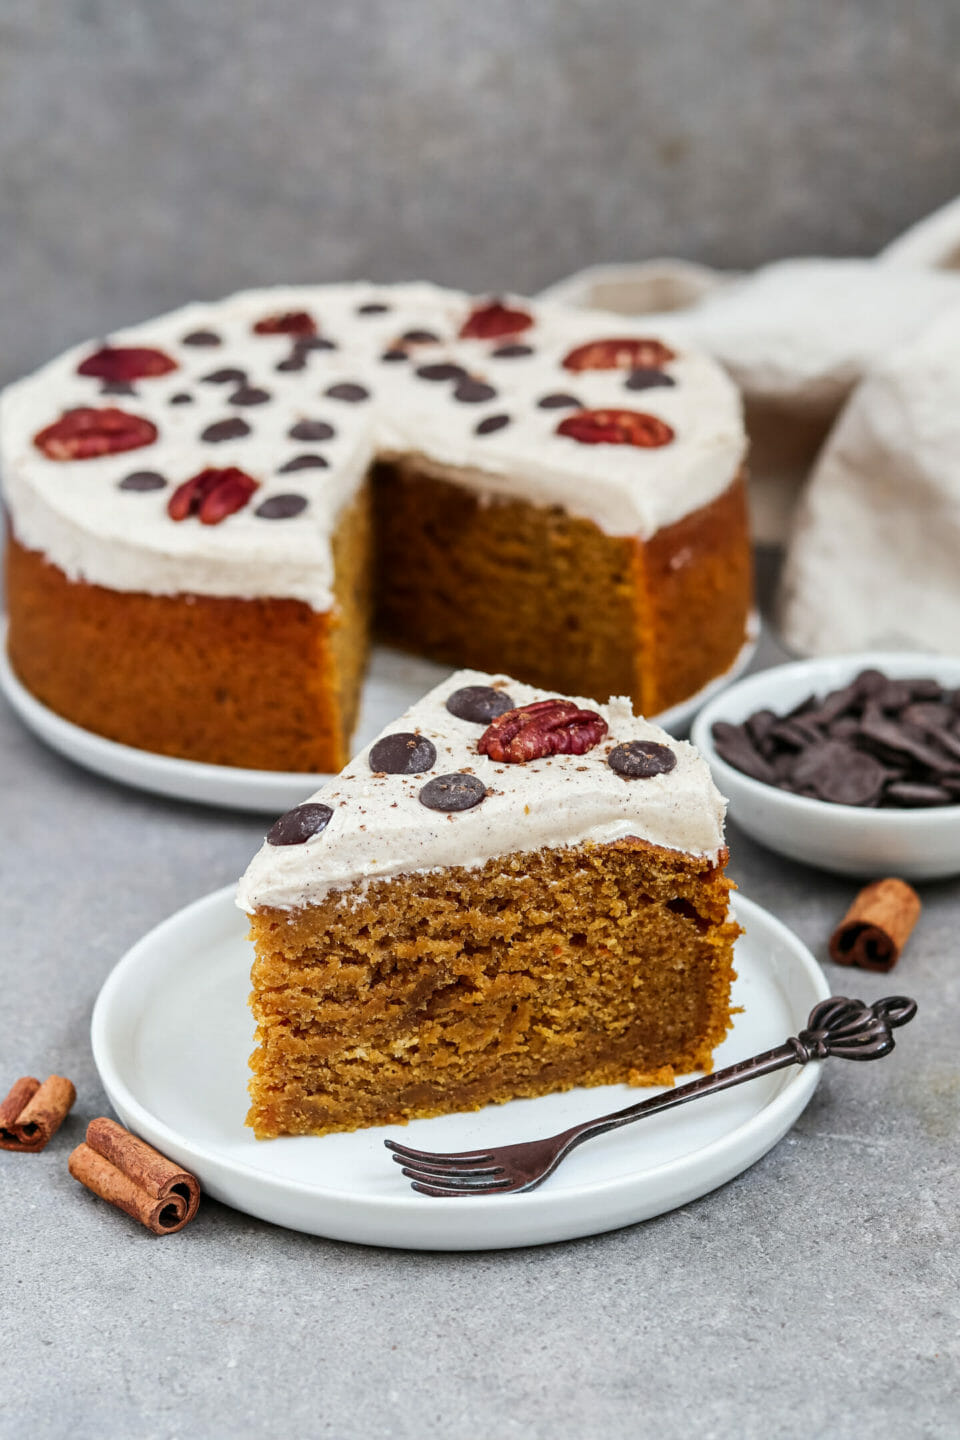 Vegan pumpkin cake with creamy cinnamon frosting and decorated with pecans and chocolate chips.